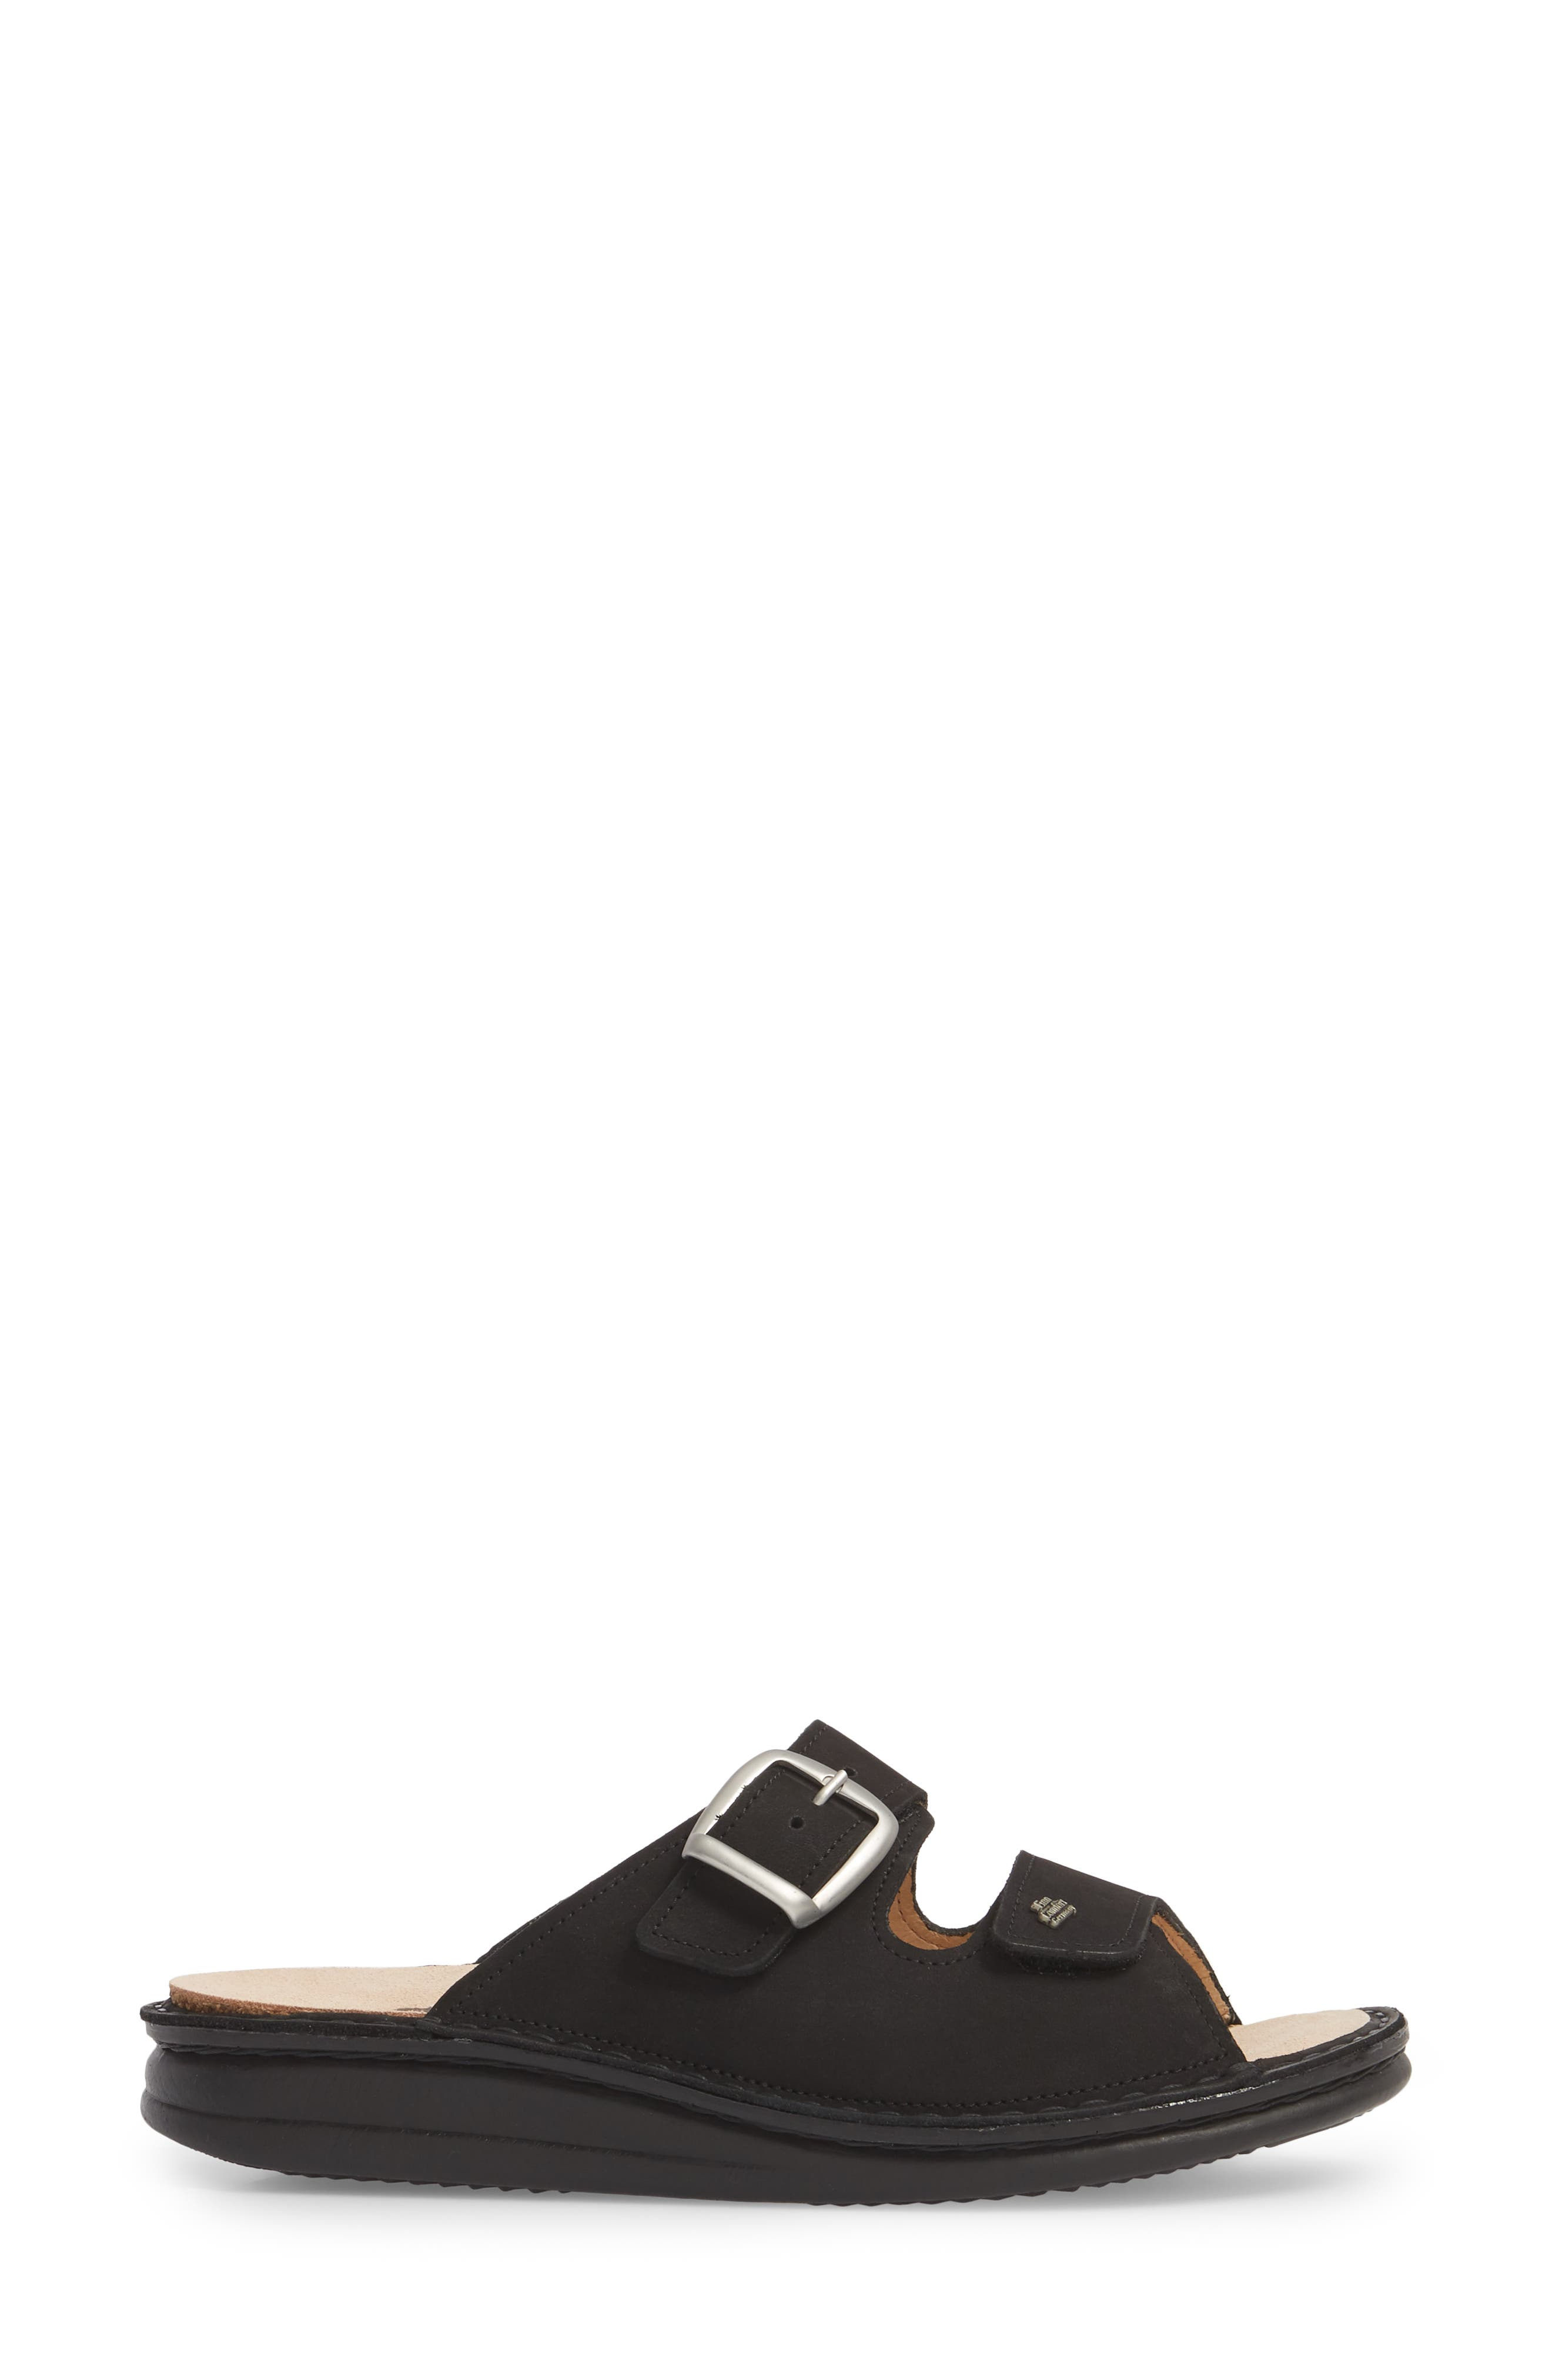 Harper Slide Sandal,                             Alternate thumbnail 3, color,                             BLACK LEATHER